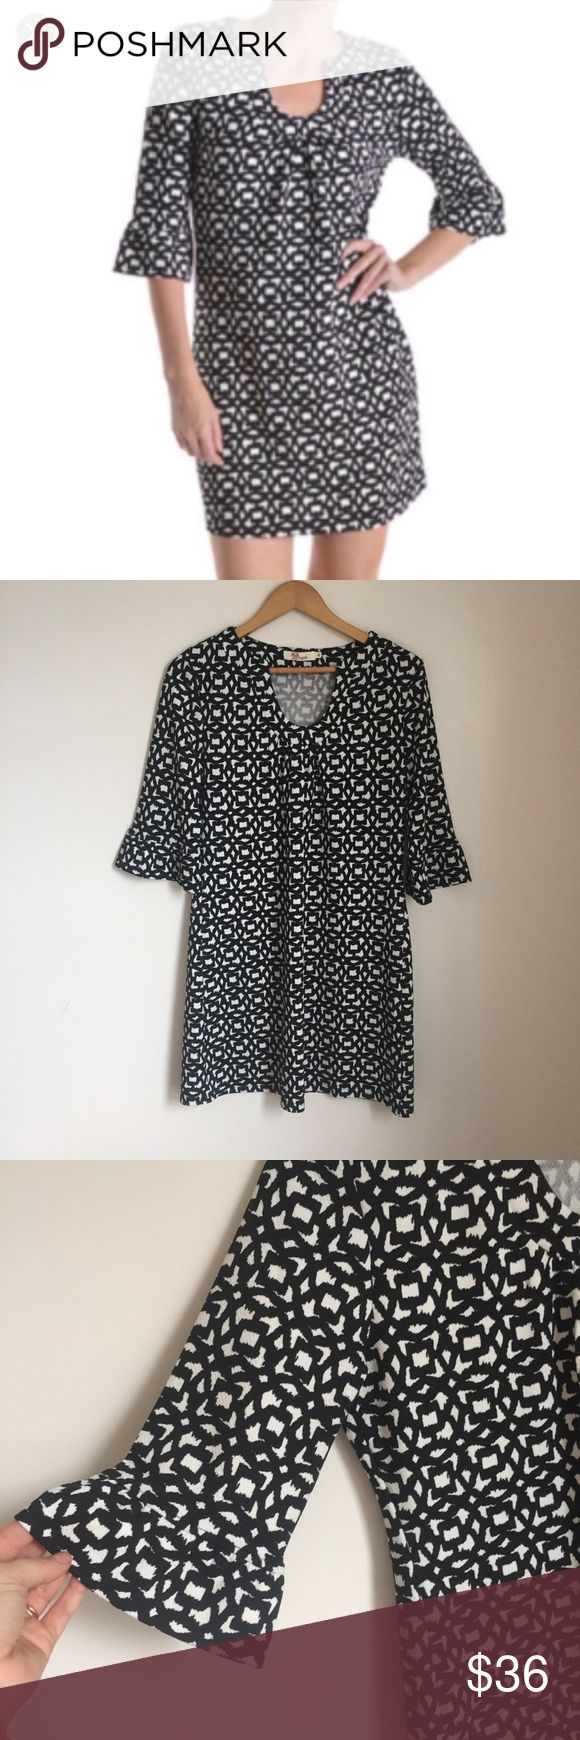 """Aryeh Black and white ruffle sleeve dress shirt Classic flattering black and white color. Notched neckline. 3/4 sleeves bell ruffle detail. Shift dress. 36"""" long 20"""" pit to pit Size XL Aryeh Dresses"""